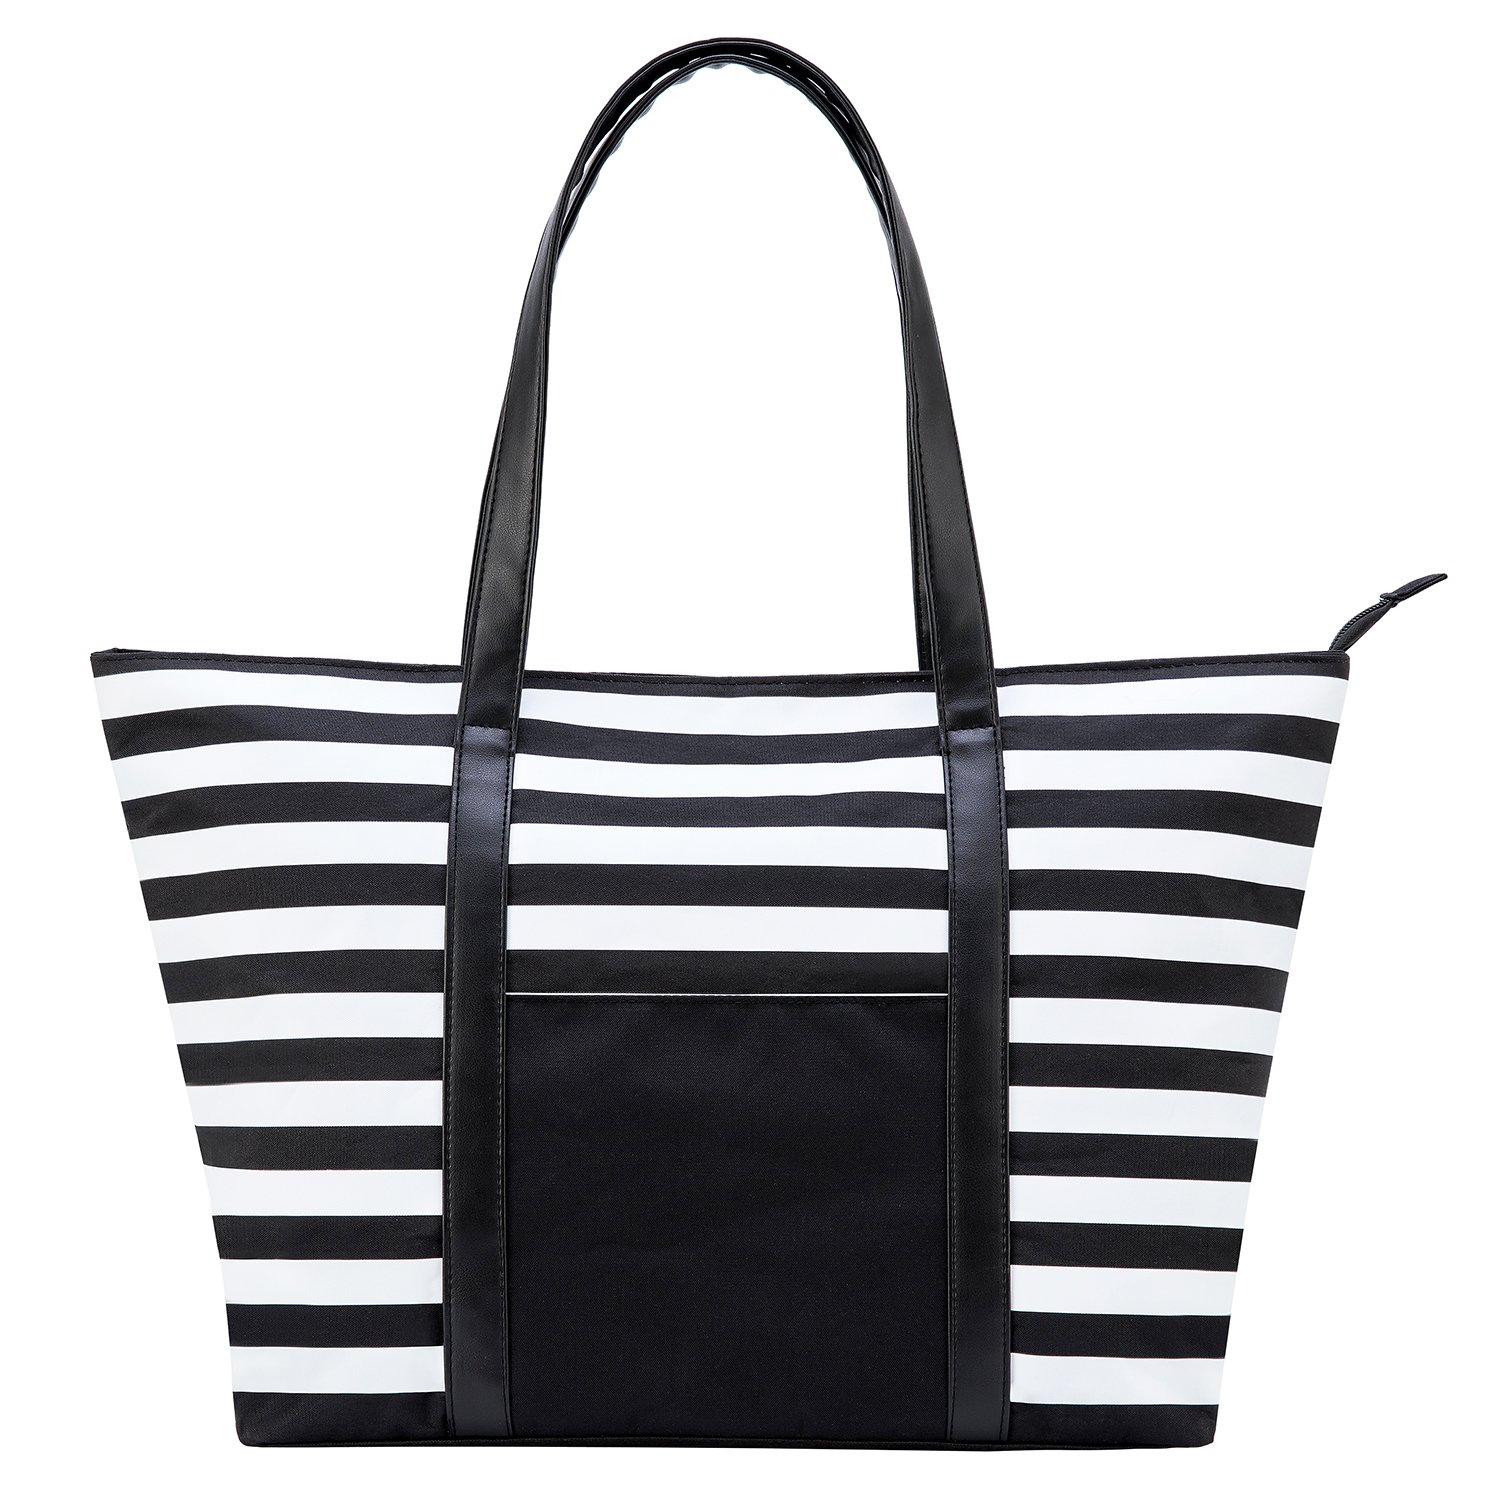 Augoog Large Beach Bag Shoulder Bag Waterproof Oxford Beach Tote with Leather Handles,Perfect Weekend Carry on Travel Tote Beach Bag,Black /& White